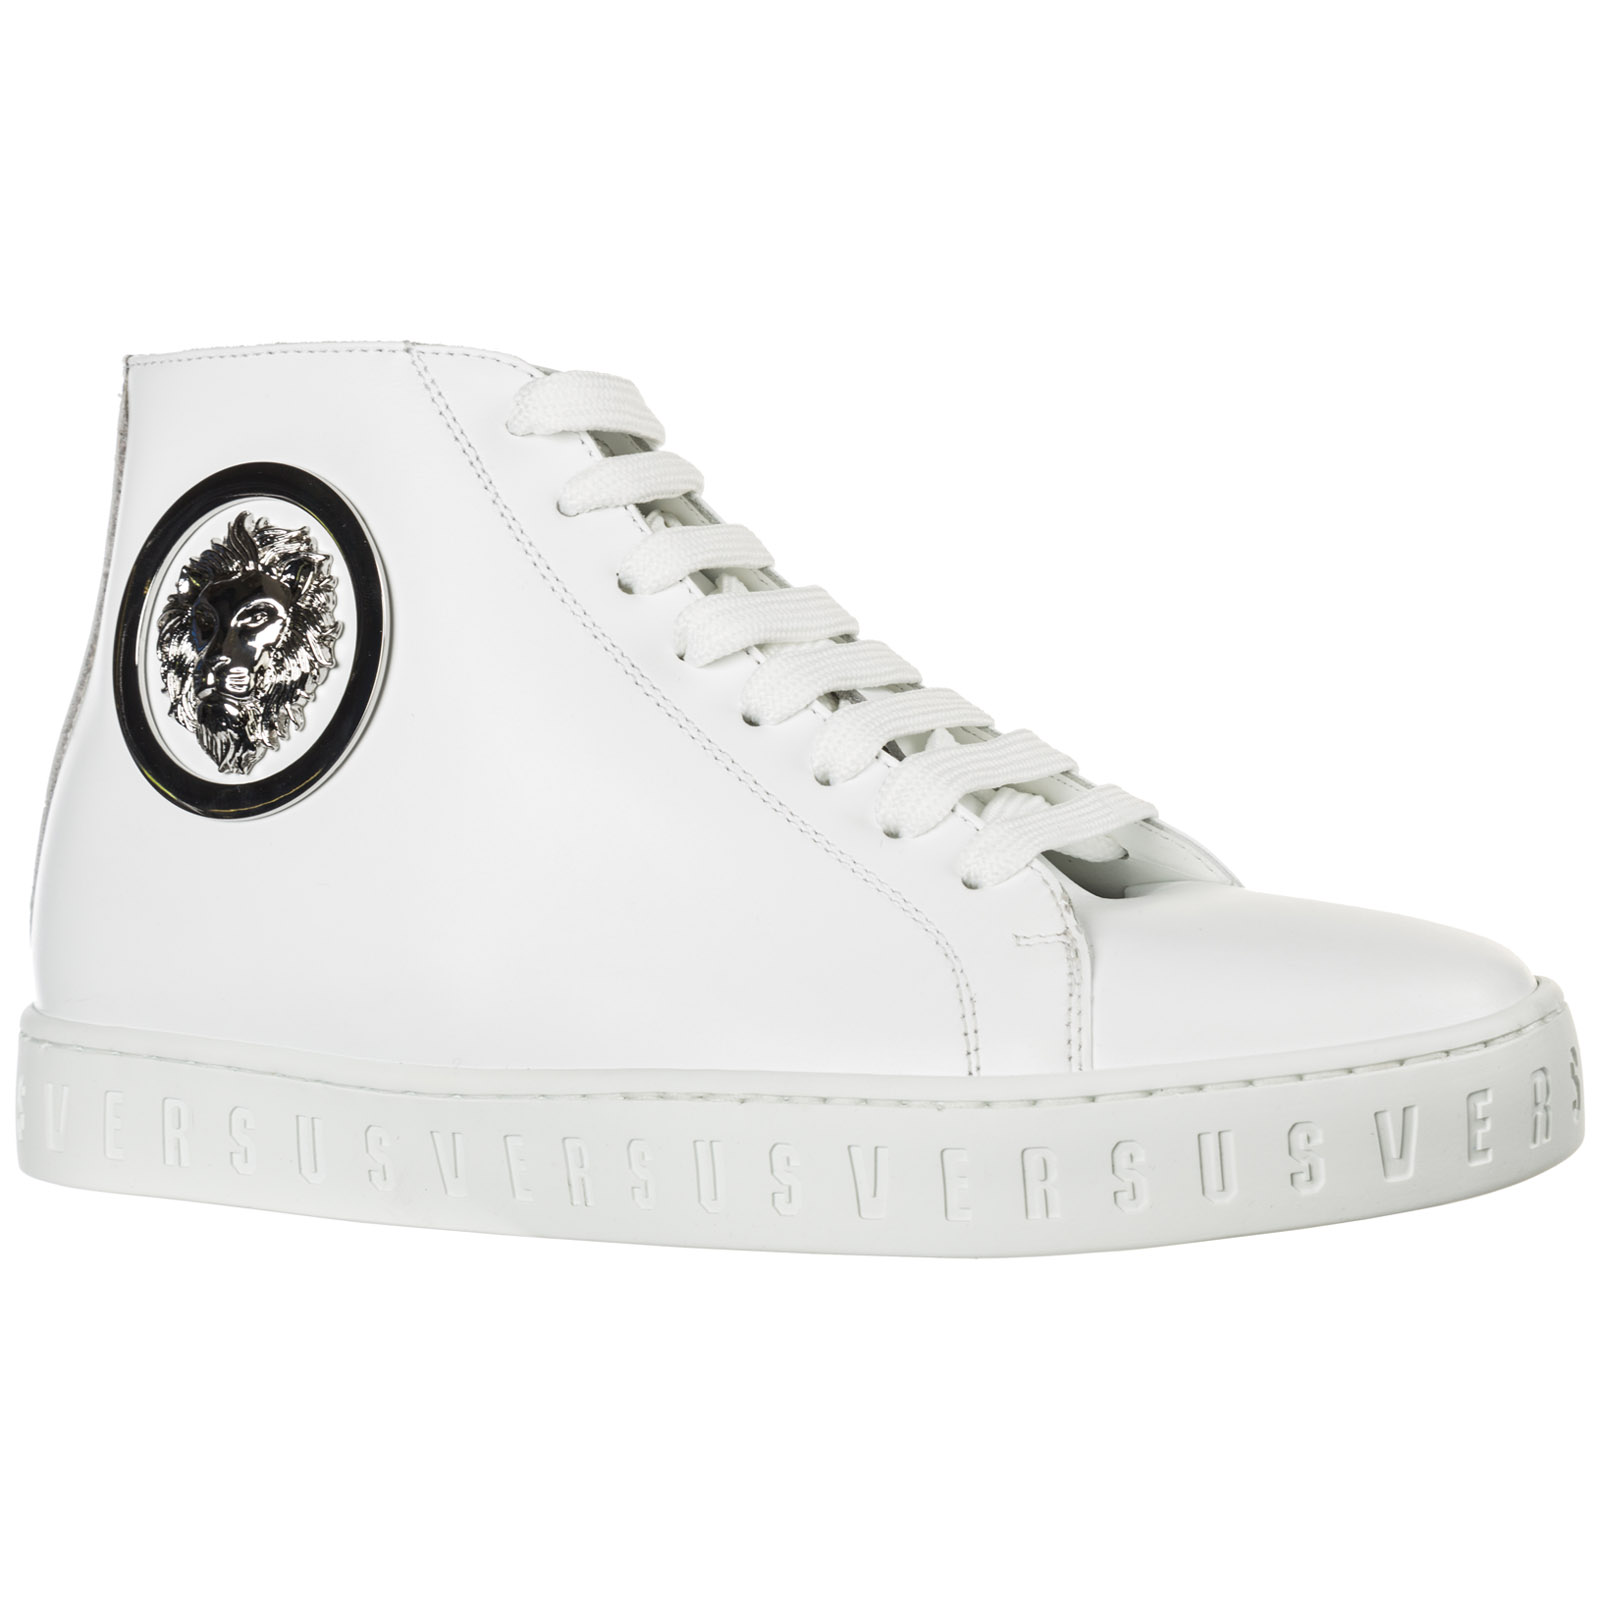 Women's shoes high top leather trainers sneakers lion head